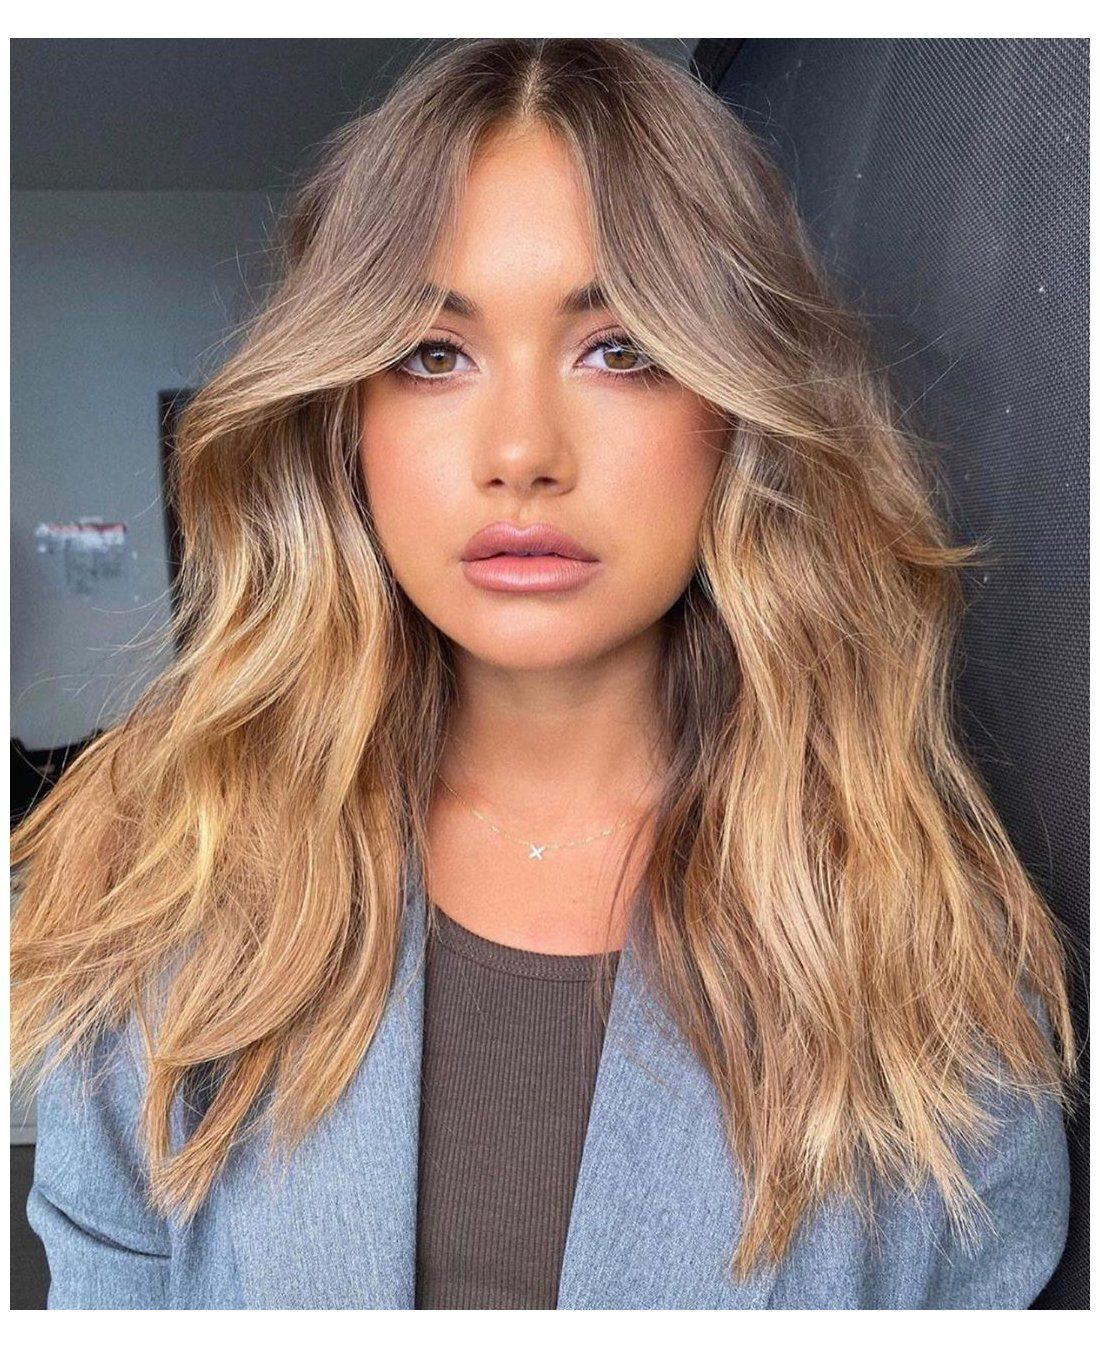 25 Slimming Hairstyles For Round Faces Haircut For Long Hair Round Face Haircutforlonghai In 2020 Haircuts For Wavy Hair Bangs With Medium Hair Long Hair Styles